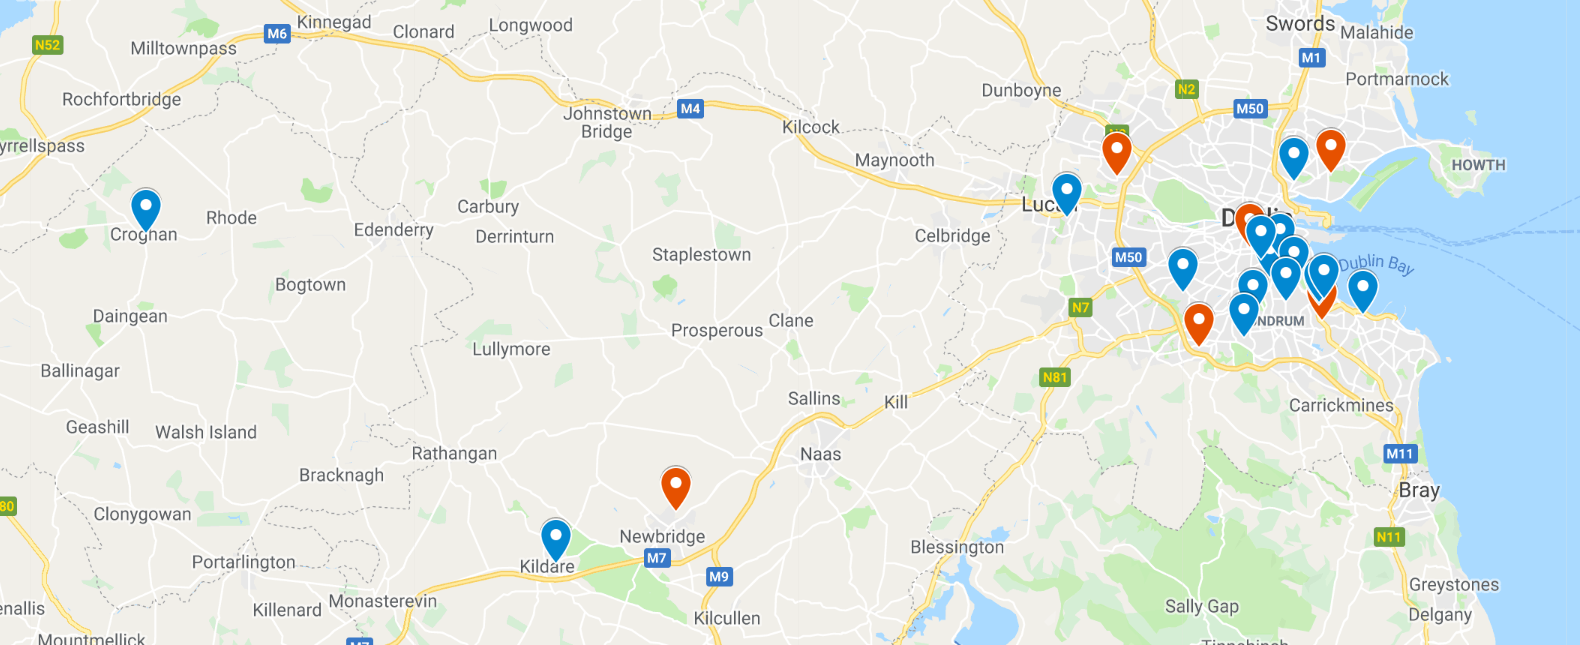 A pin for each Academy of Code venue in autumn 2019. Our forays into Offaly and Kildare skew the picture a little! The red/orange pins above are the public venues, while blue pins indicate private classes for students of only those schools.